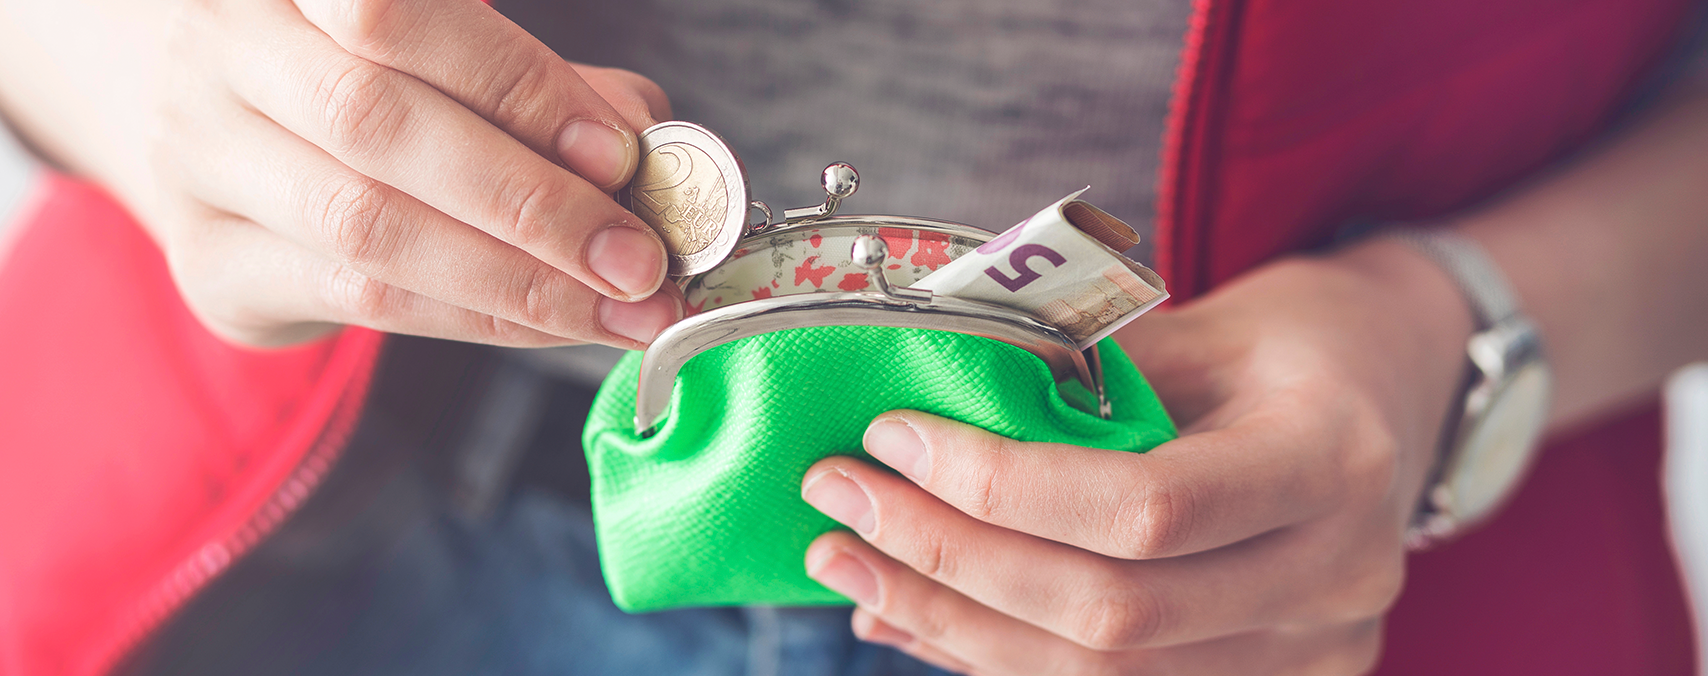 6 Money Saving Challenges To Improve Your Finances